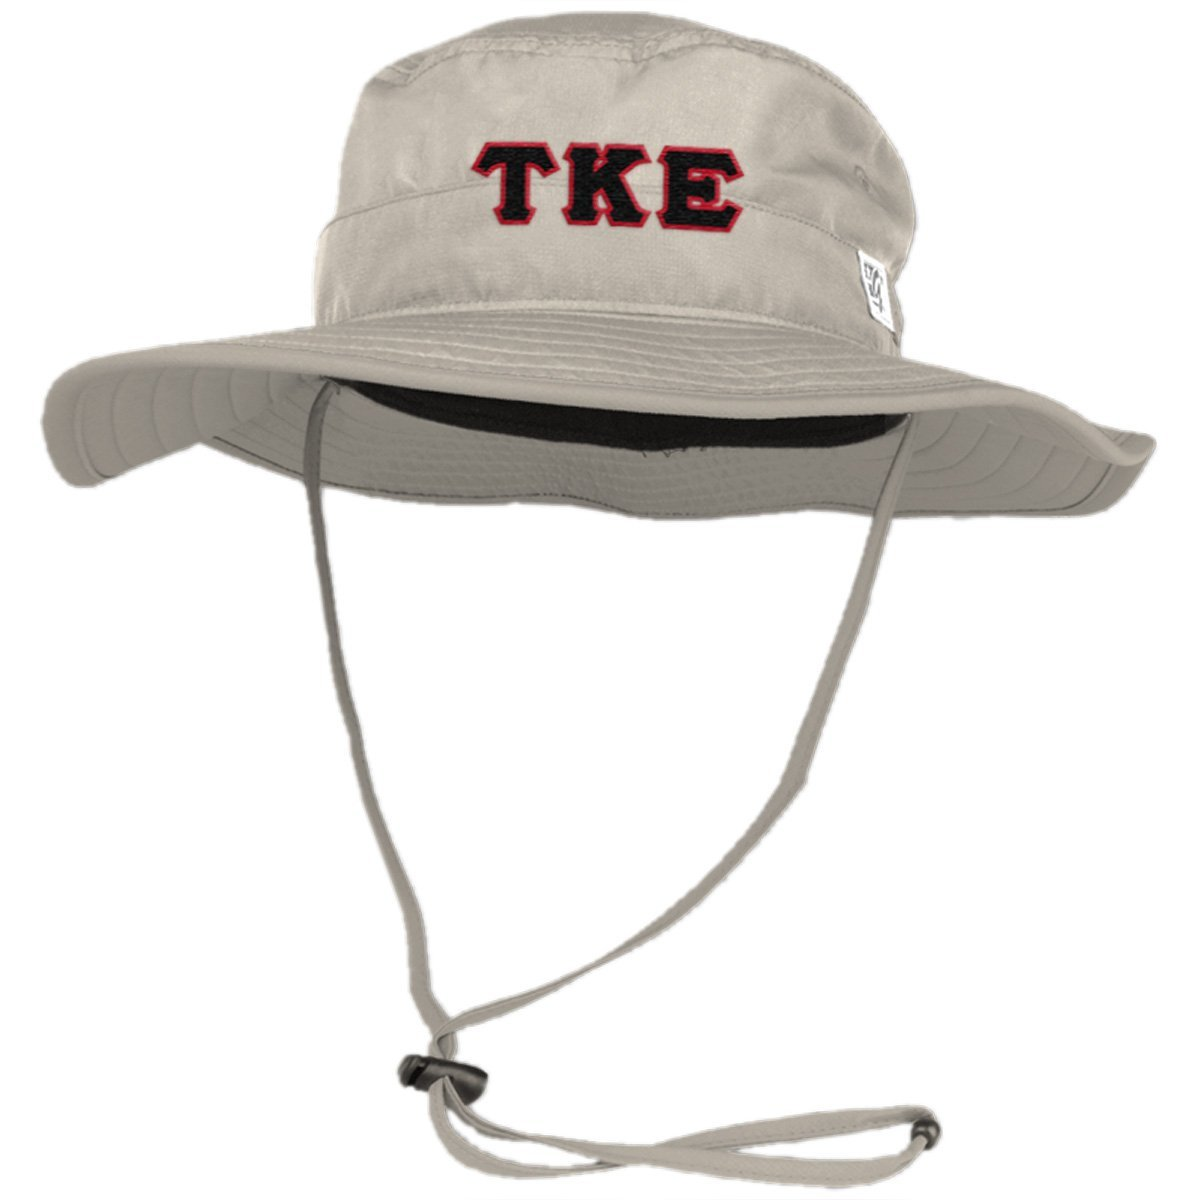 Teke Boonie Hat by The Game